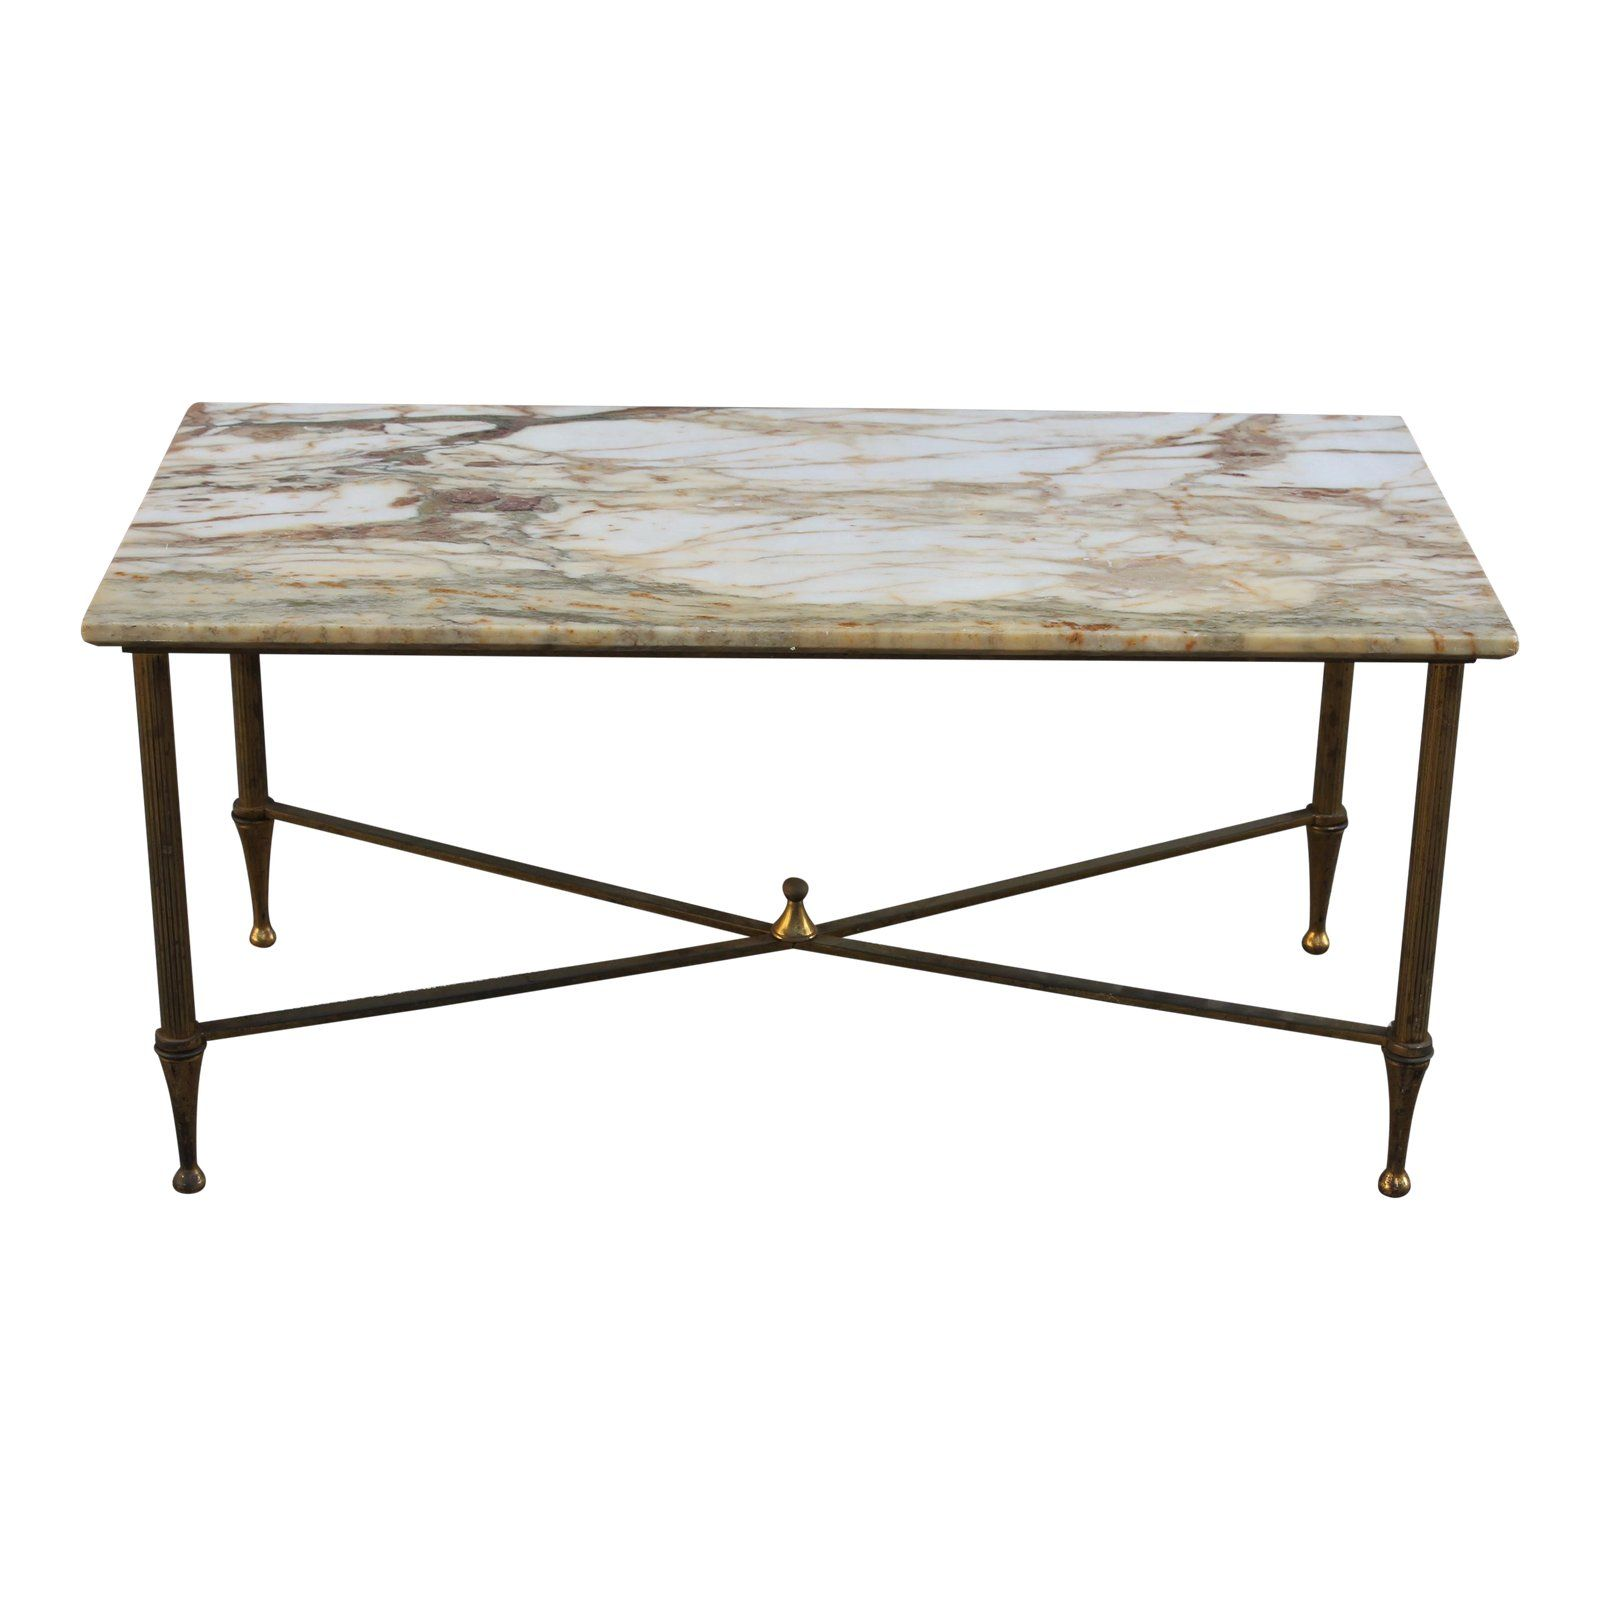 French Maison Jansen Coffee Or Cocktail Table Bronze Rectangular With Marble Top Circa 1940s Chairish Coffee Table Table Maison Jansen